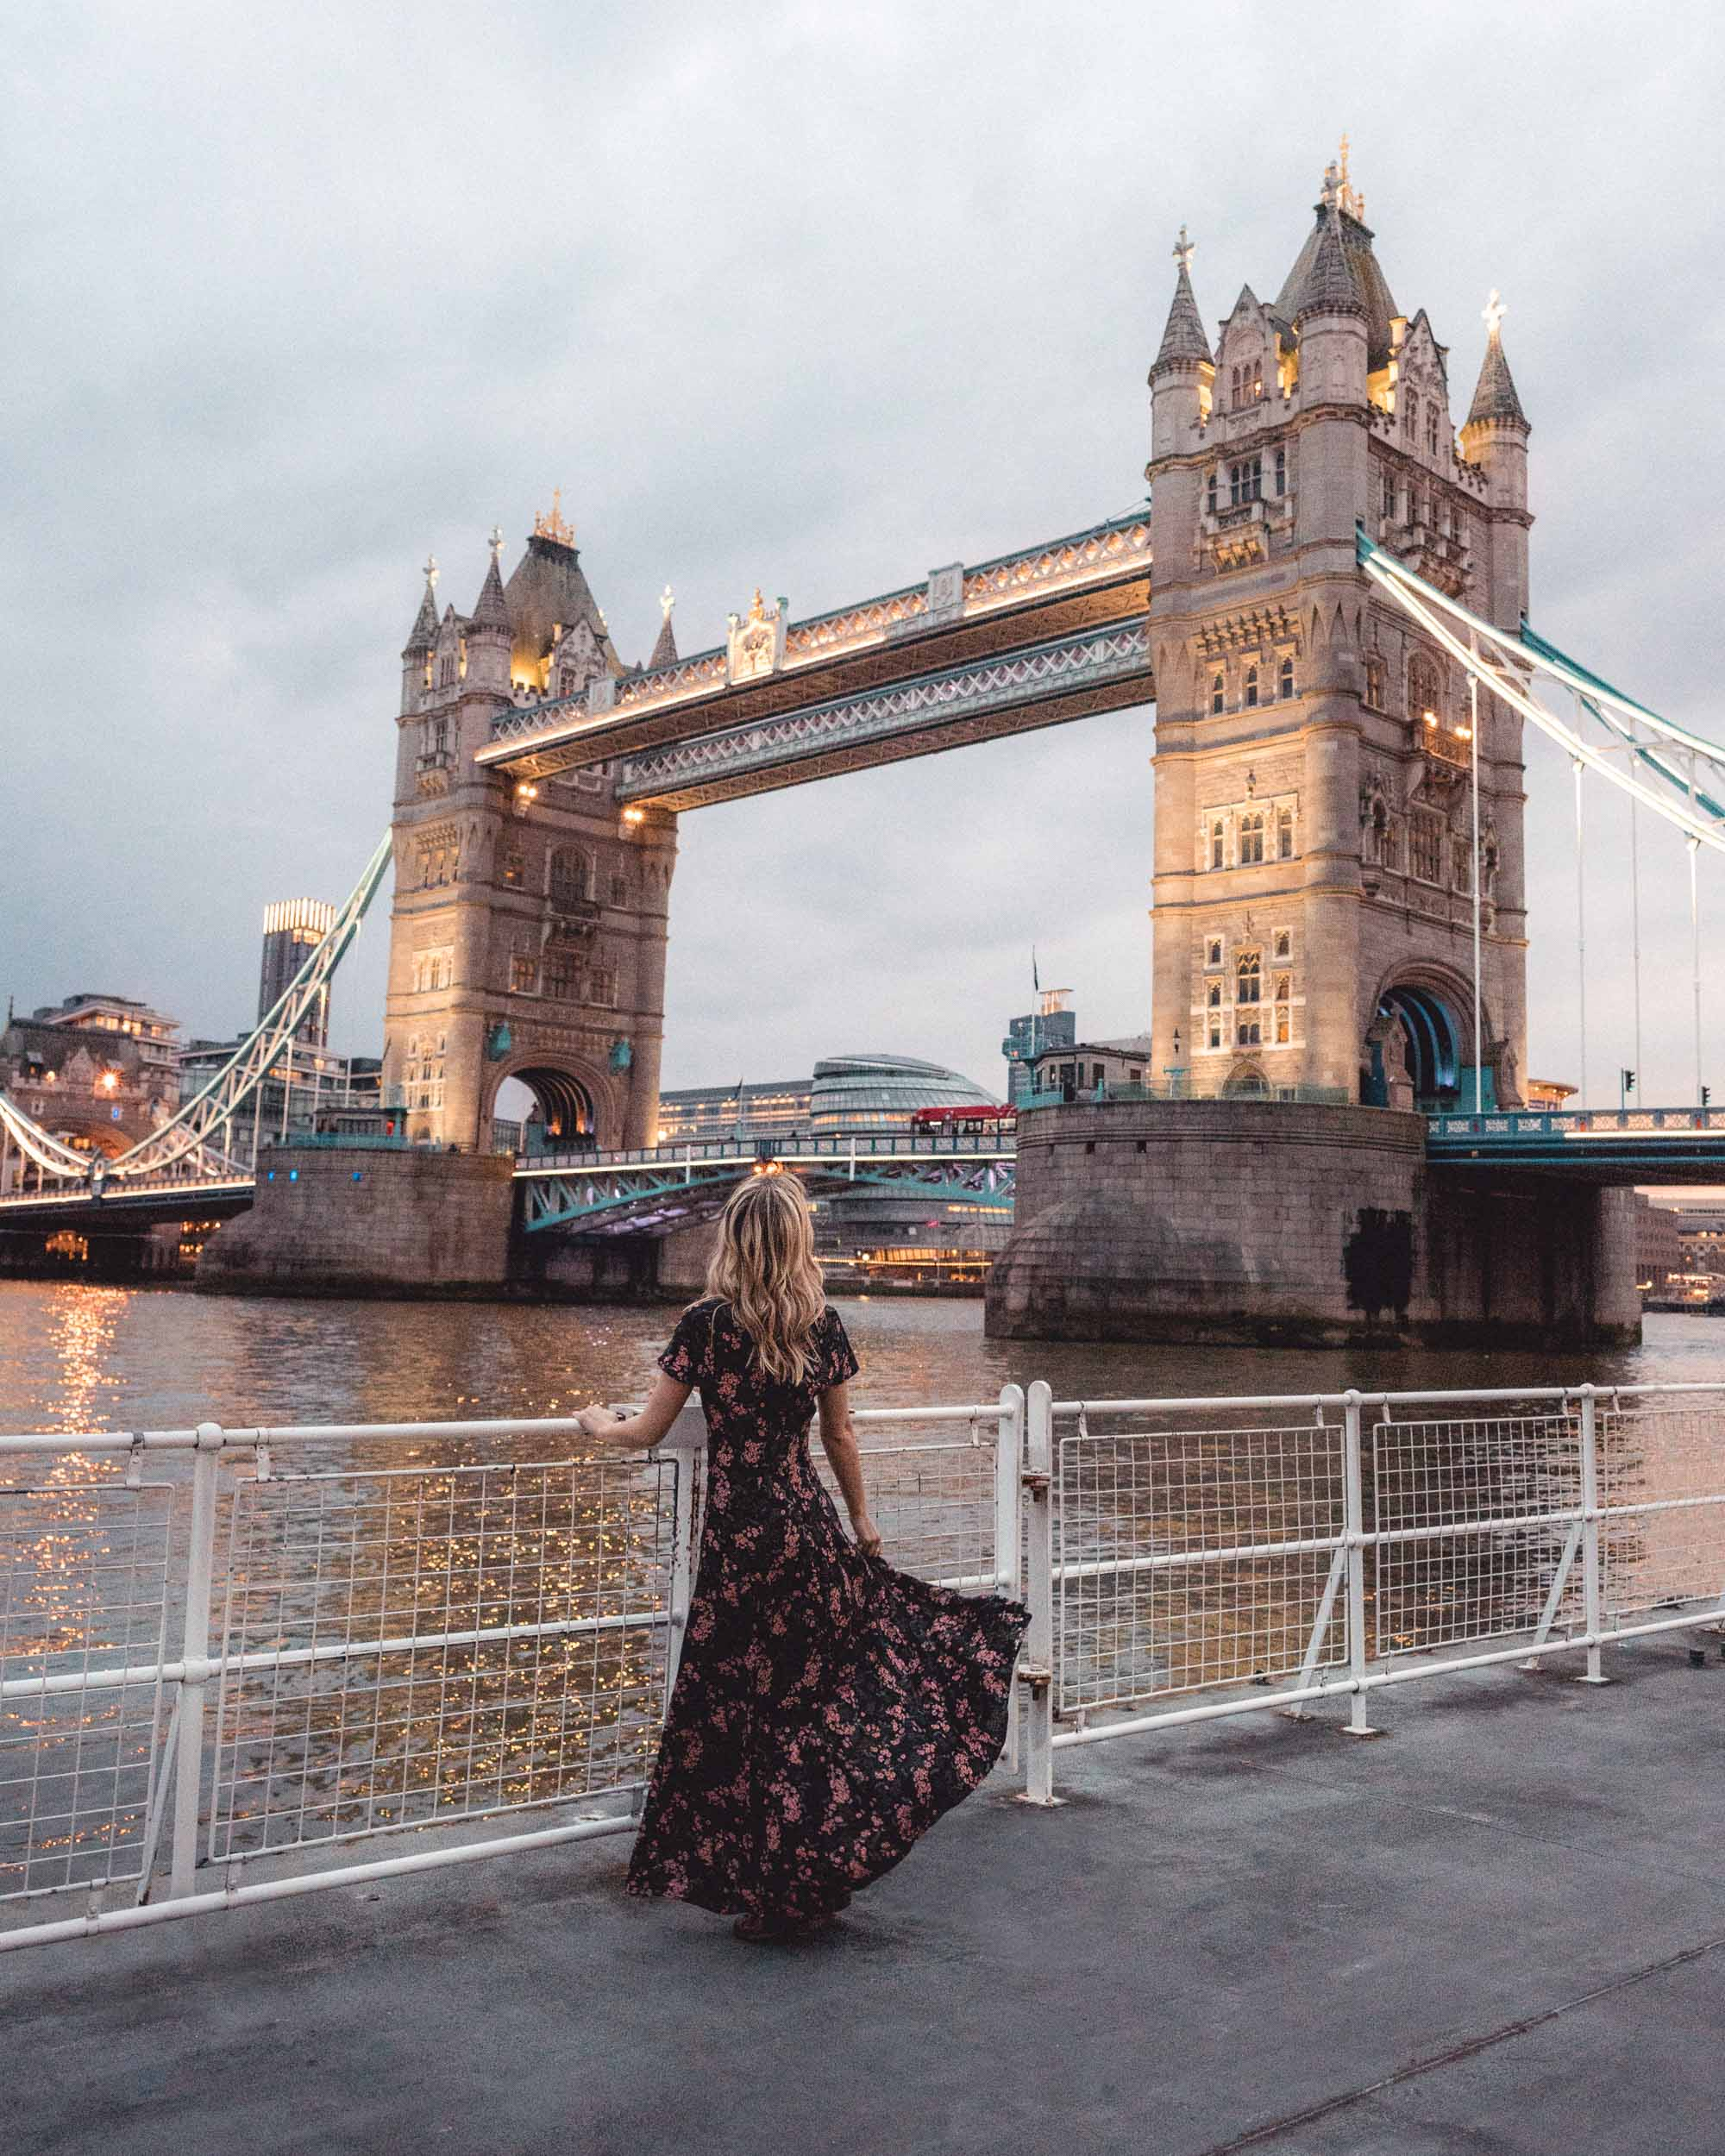 Tower bridge sunset london england travel blogger Selena Taylor of Find Us Lost